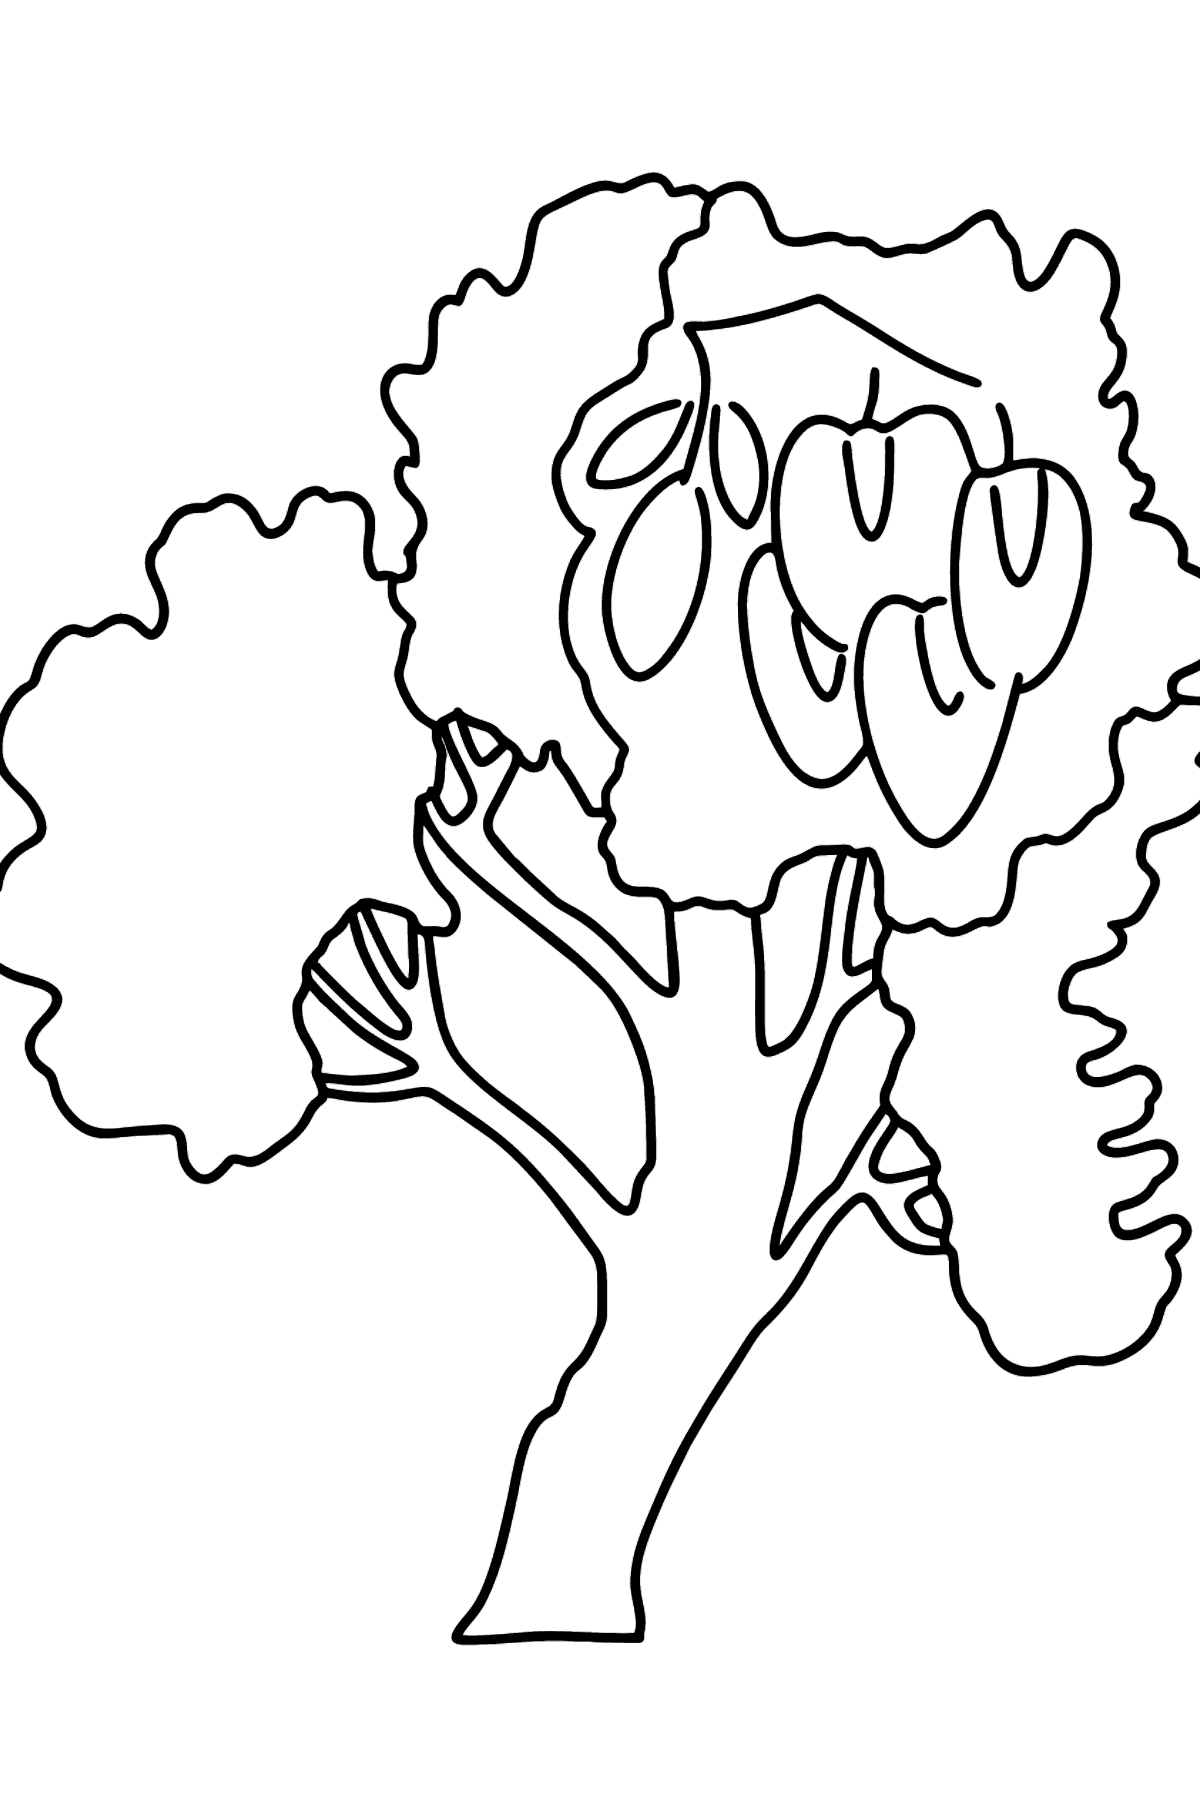 Locust tree (Robinia Pseudoacacia) coloring page - Coloring Pages for Kids